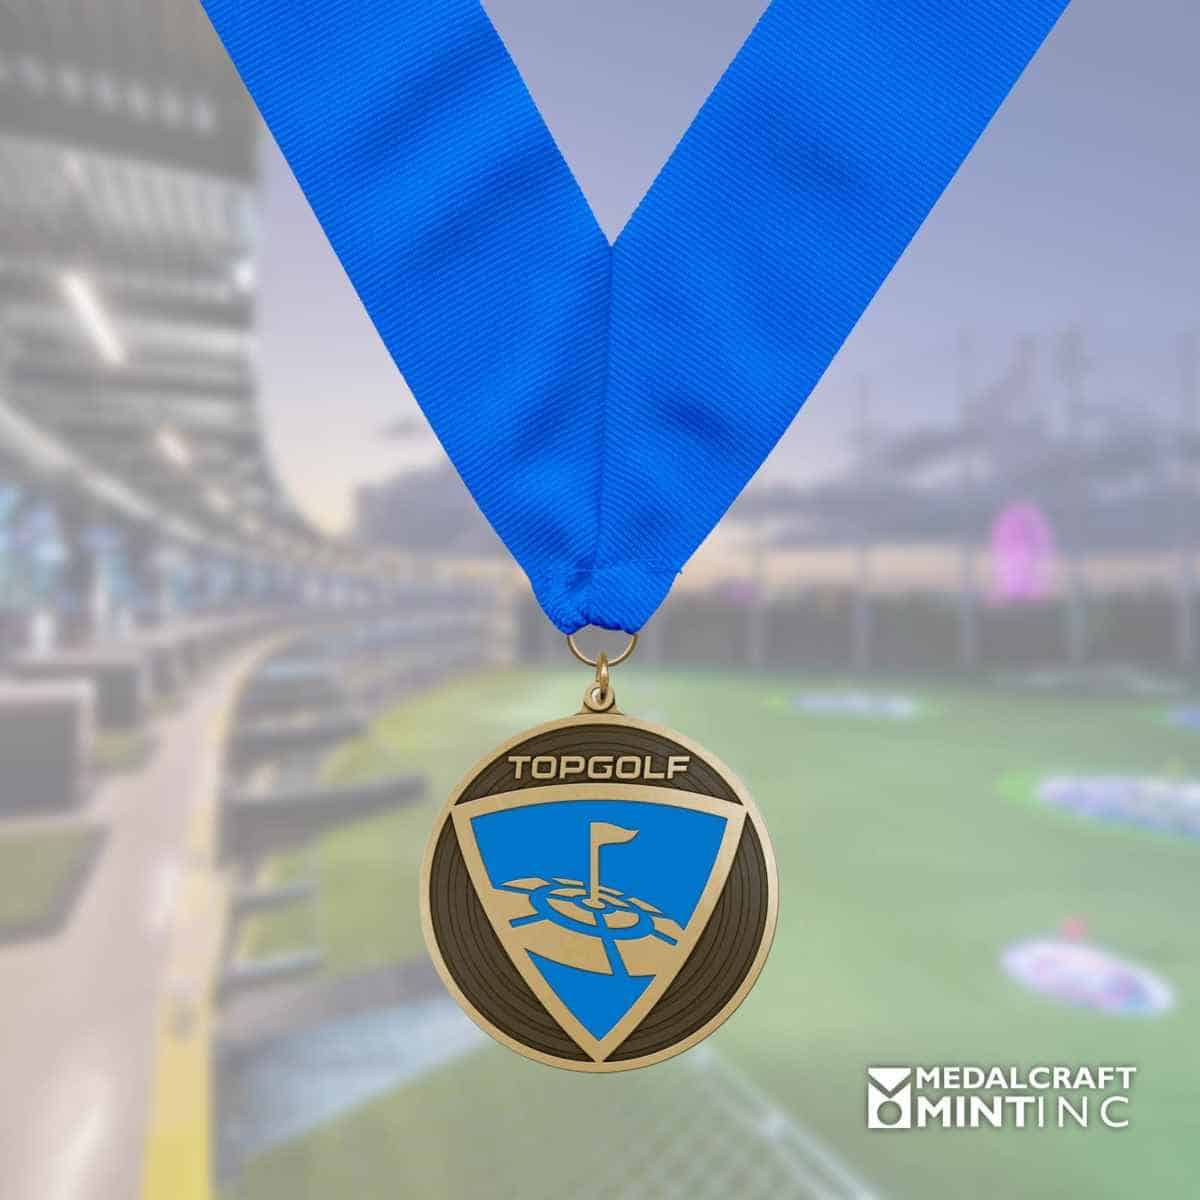 You are currently viewing The Challenge: Create a More Attractive Award Medal and Ribbon for a Similar Price